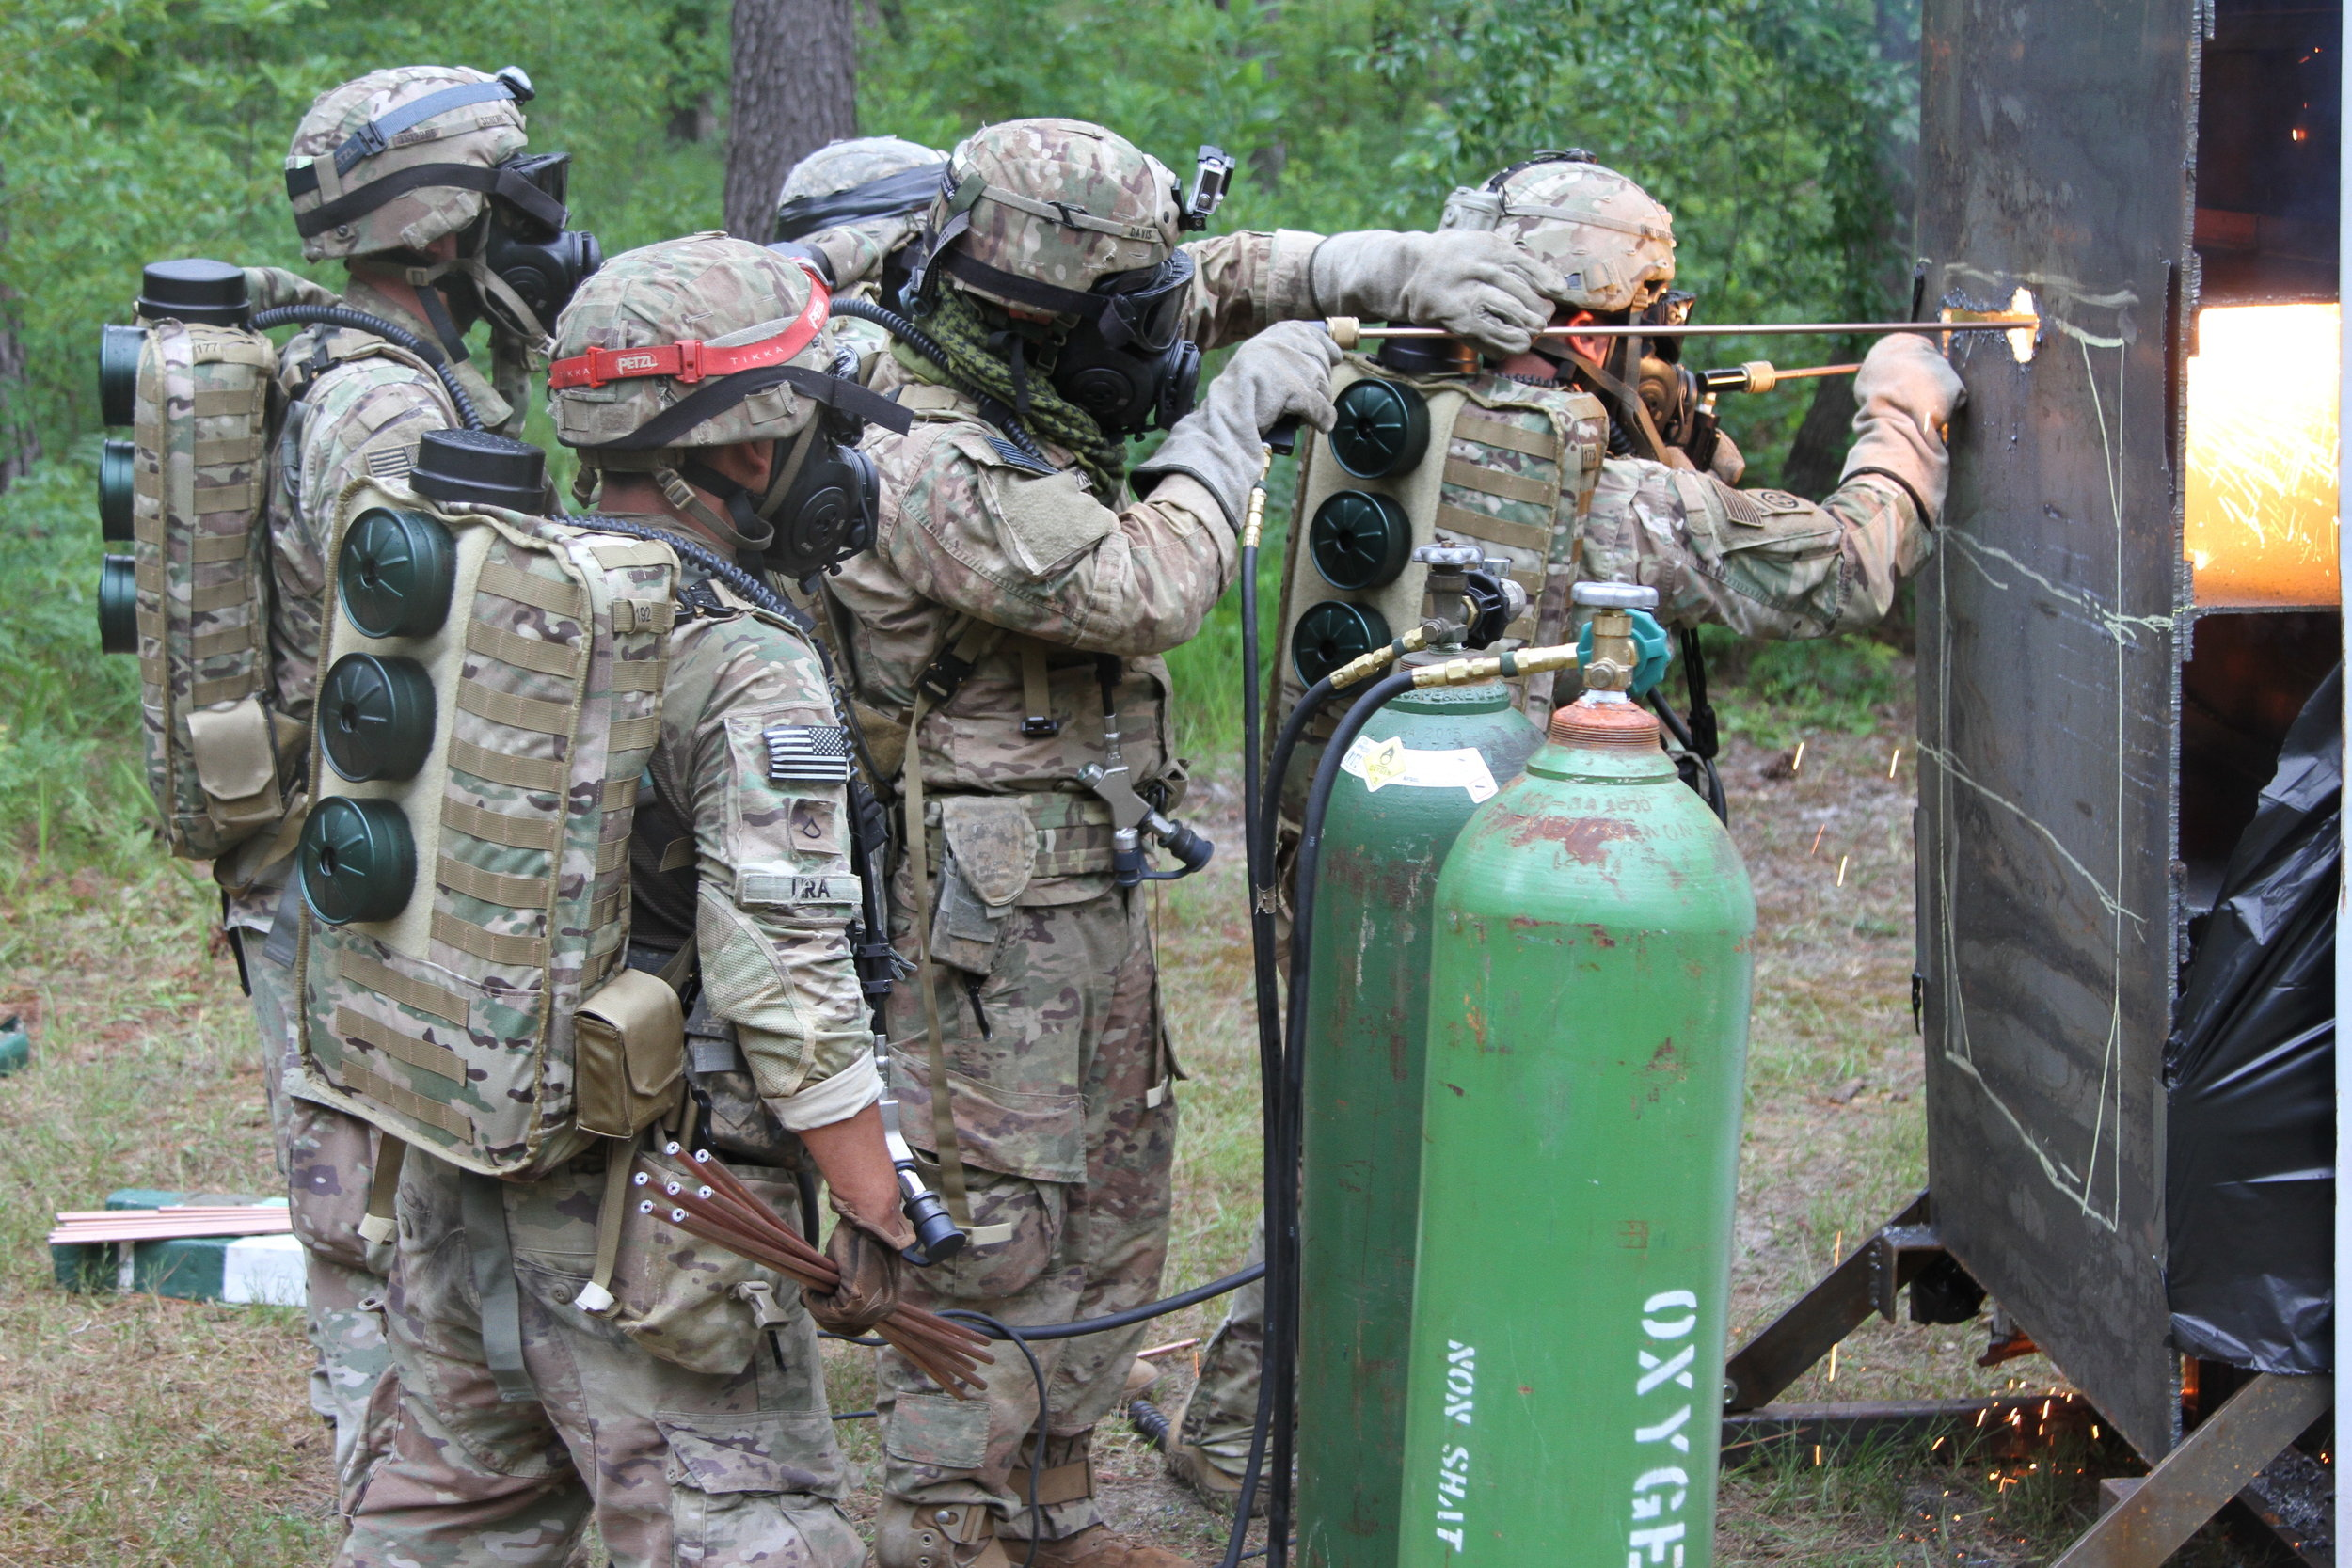 United States (6 June 2019): Paratroopers assigned to 37th Brigade Engineer Battalion, 2nd Brigade Combat Team, 82nd Airborne Division conduct simulated subterranean breaching techniques and CBRN Training using hybrid PAPR/SCBA systems. (Source: DVIDSHUB, SSG Anthony Johnson, 2nd BCT, 82nd Airborne Division Public Affairs)